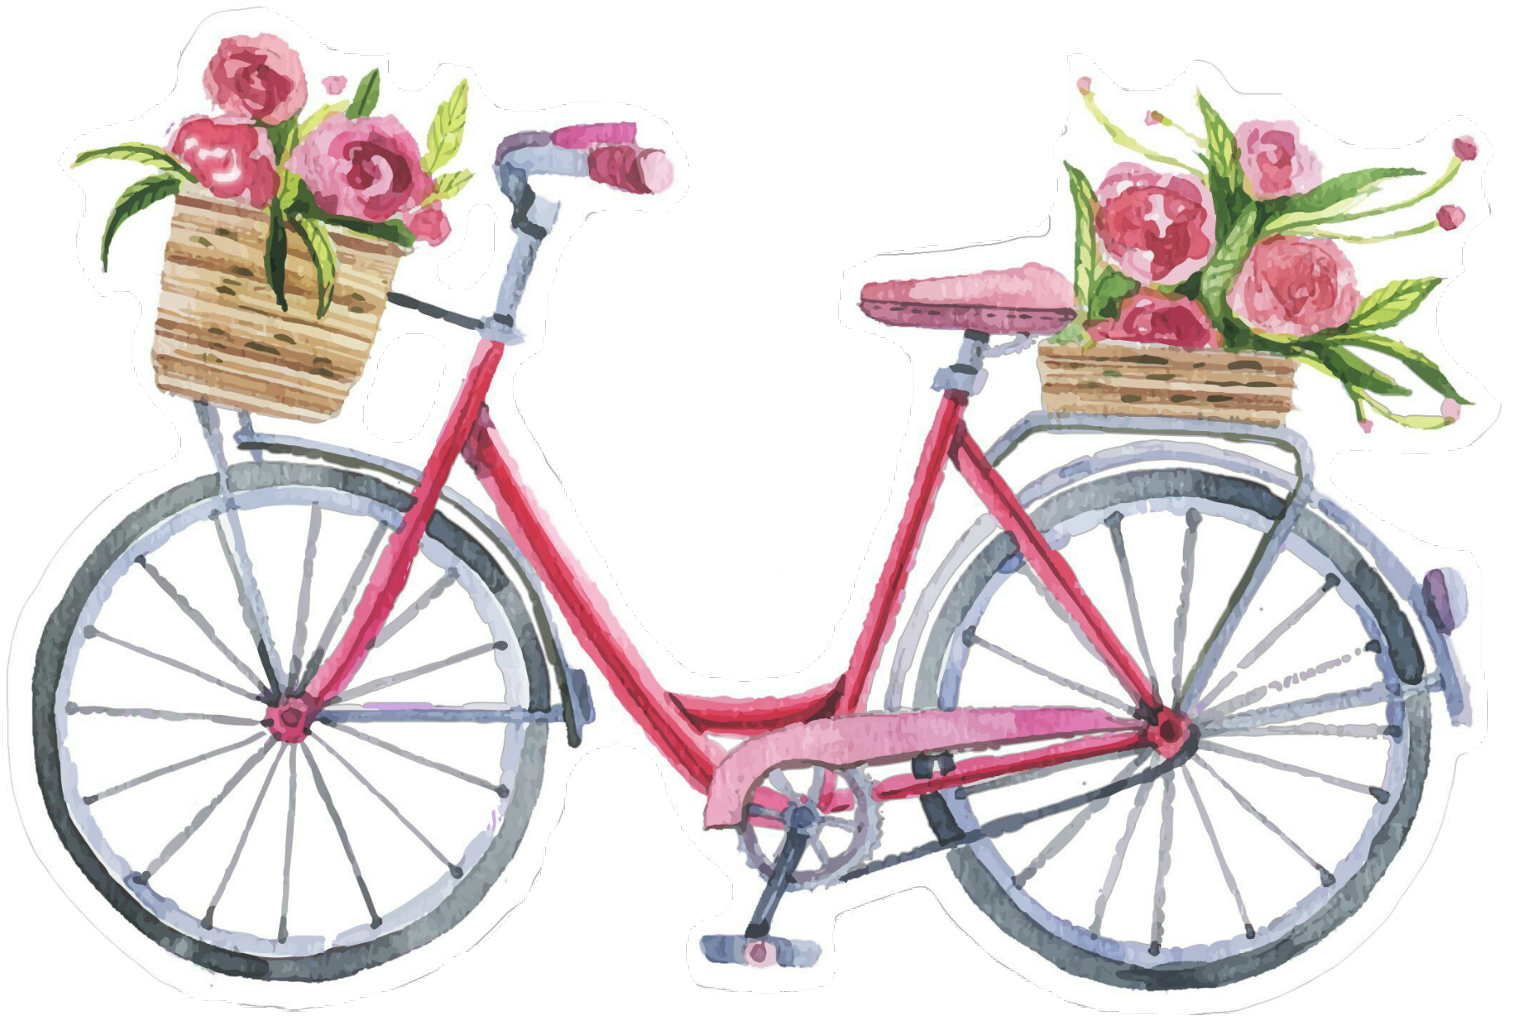 Clipart bicycle spring. Bike bycicle flower summer